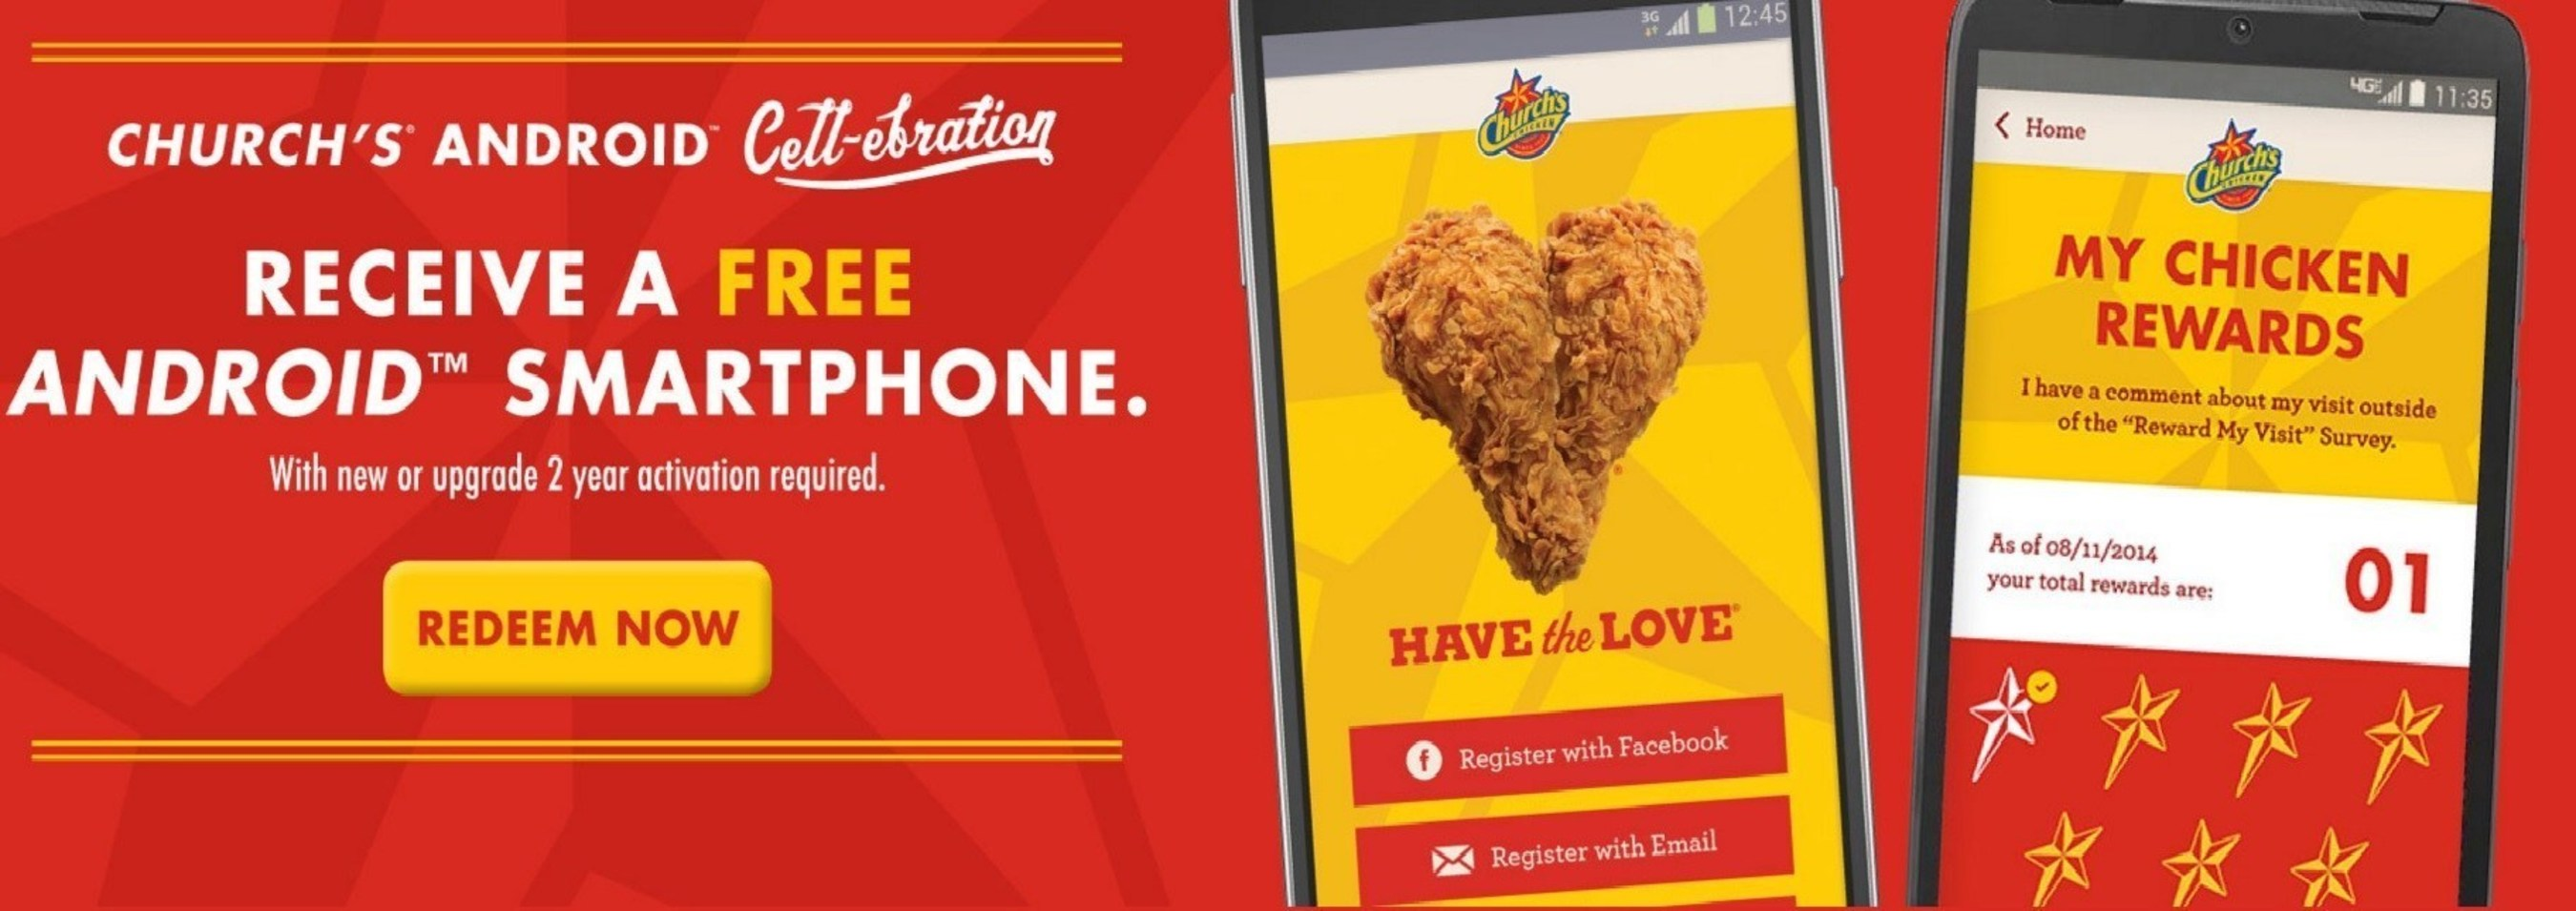 Church's Chicken® Helps Fans Stay Connected Over The Holidays With An Android™ Smartphone Offer